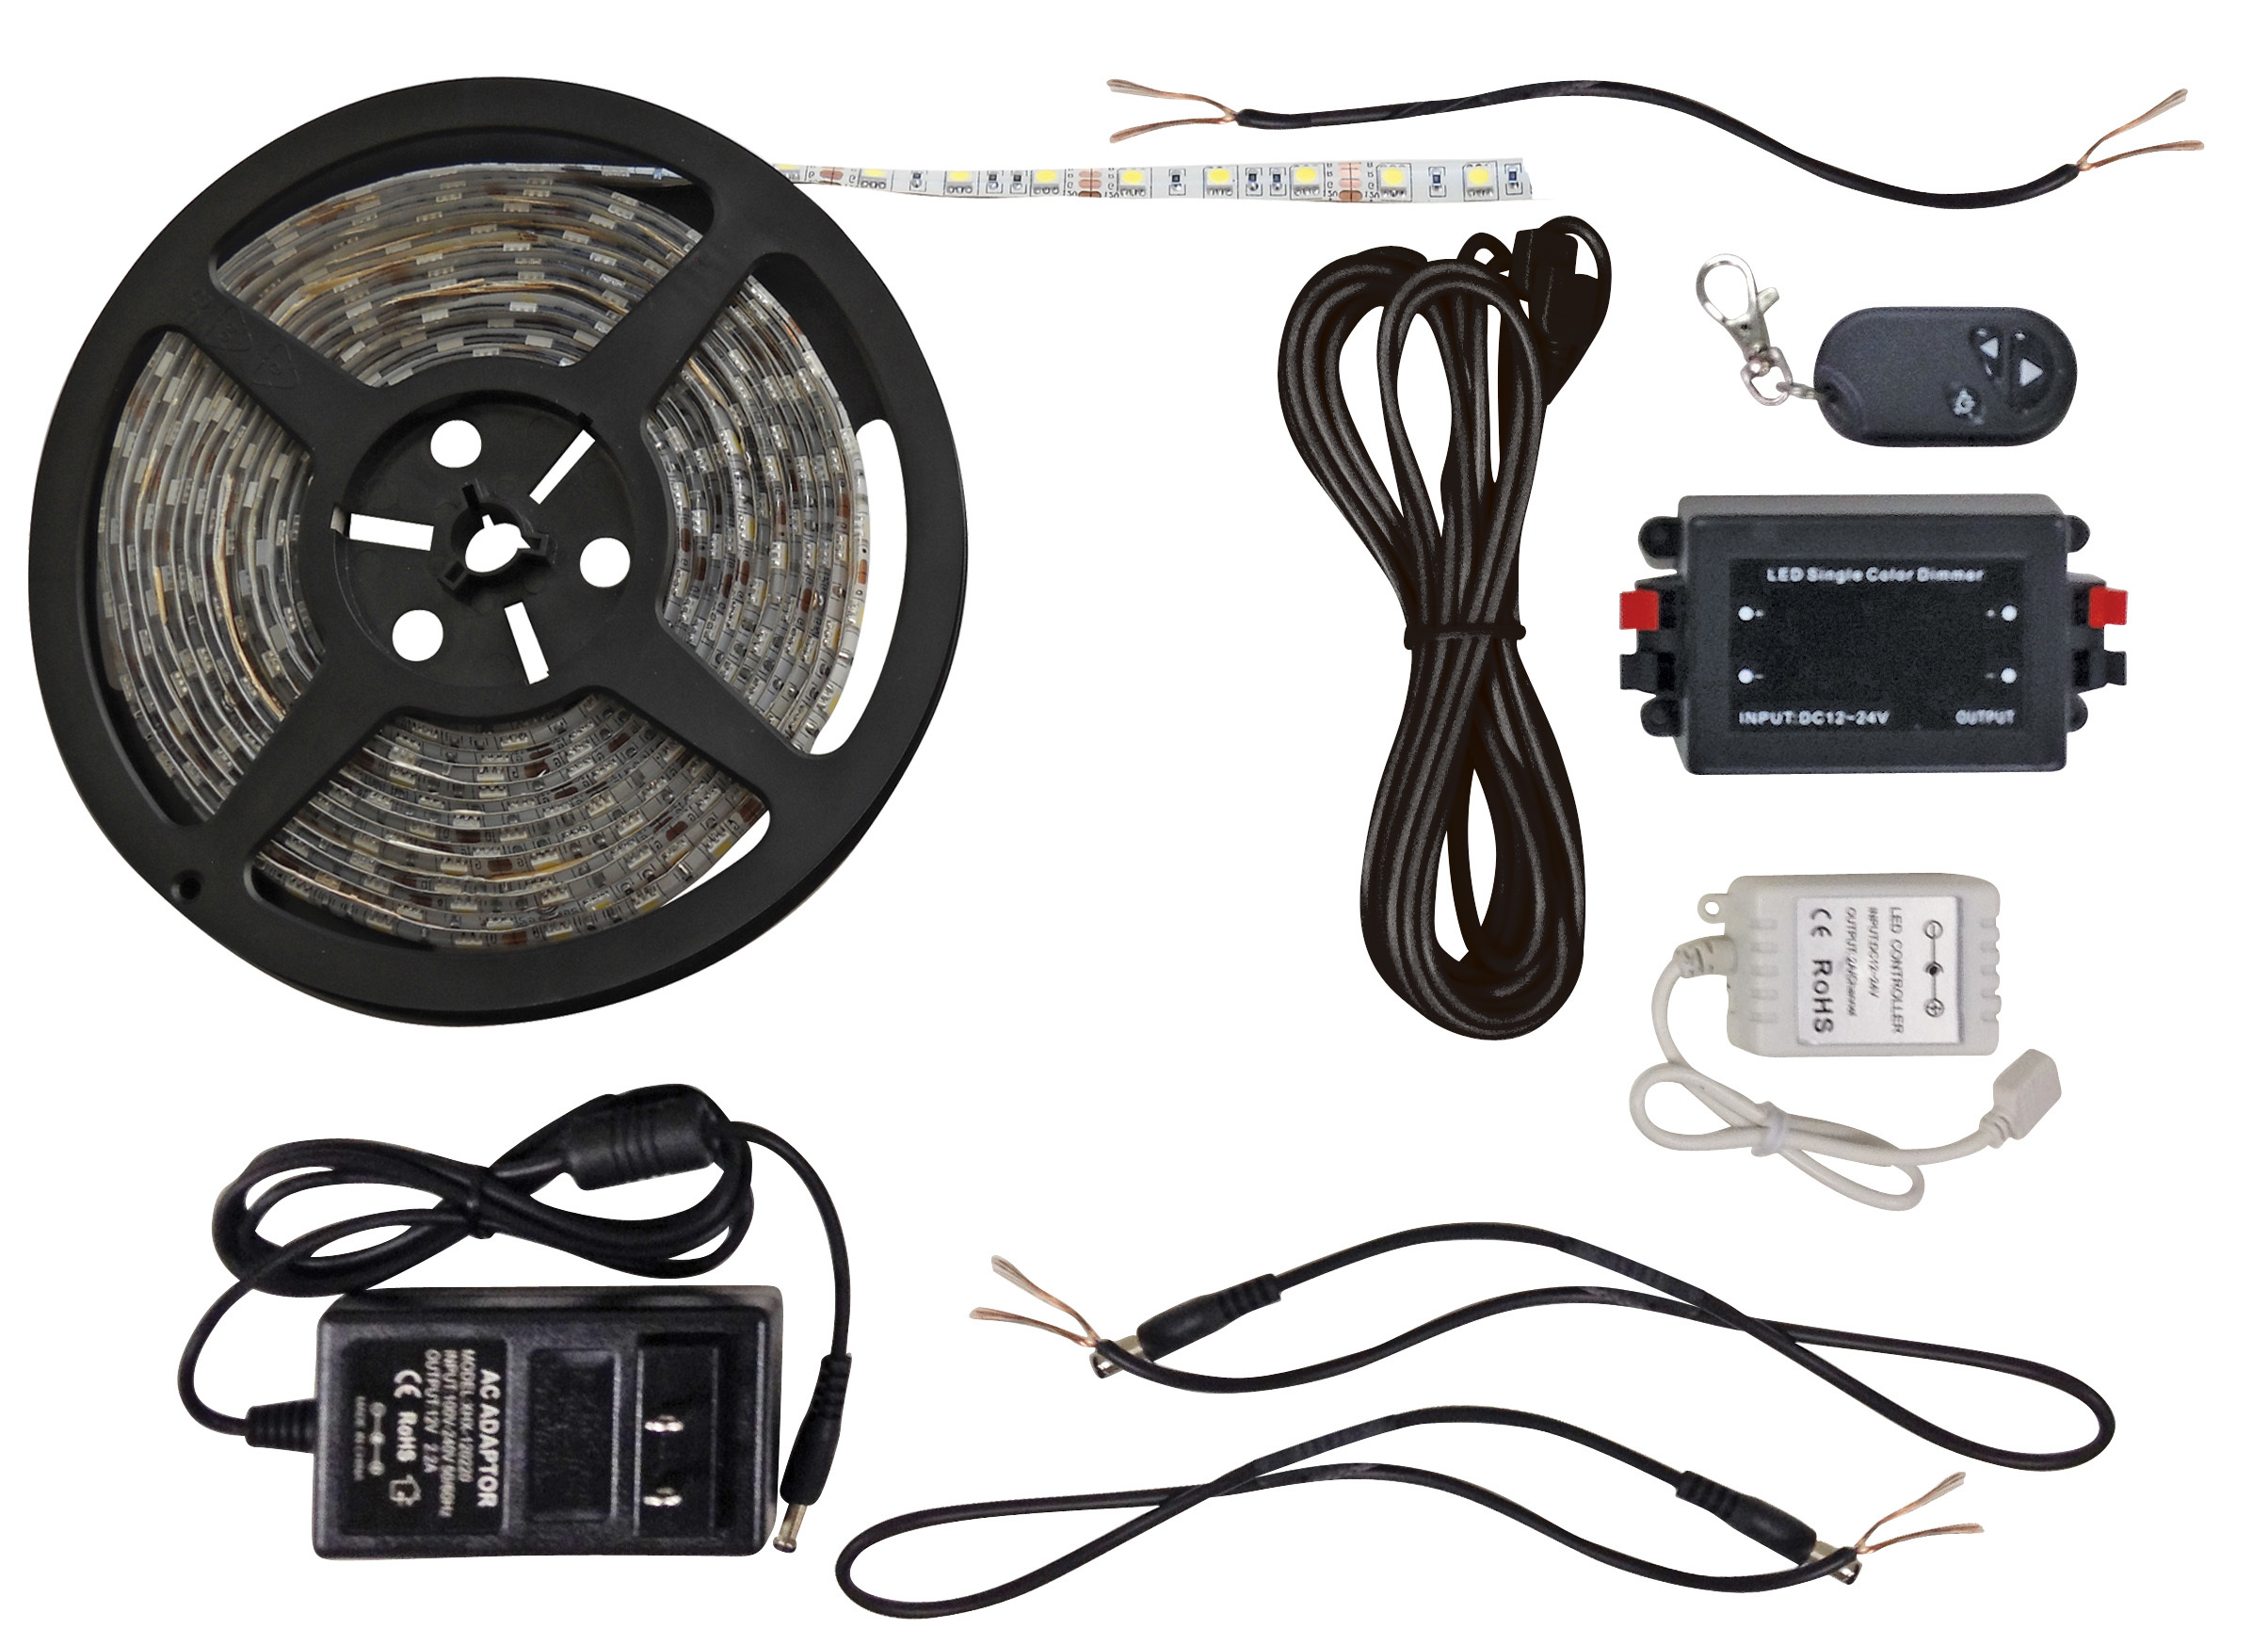 Bright White 16 Foot LED Strip Light Kit 52665